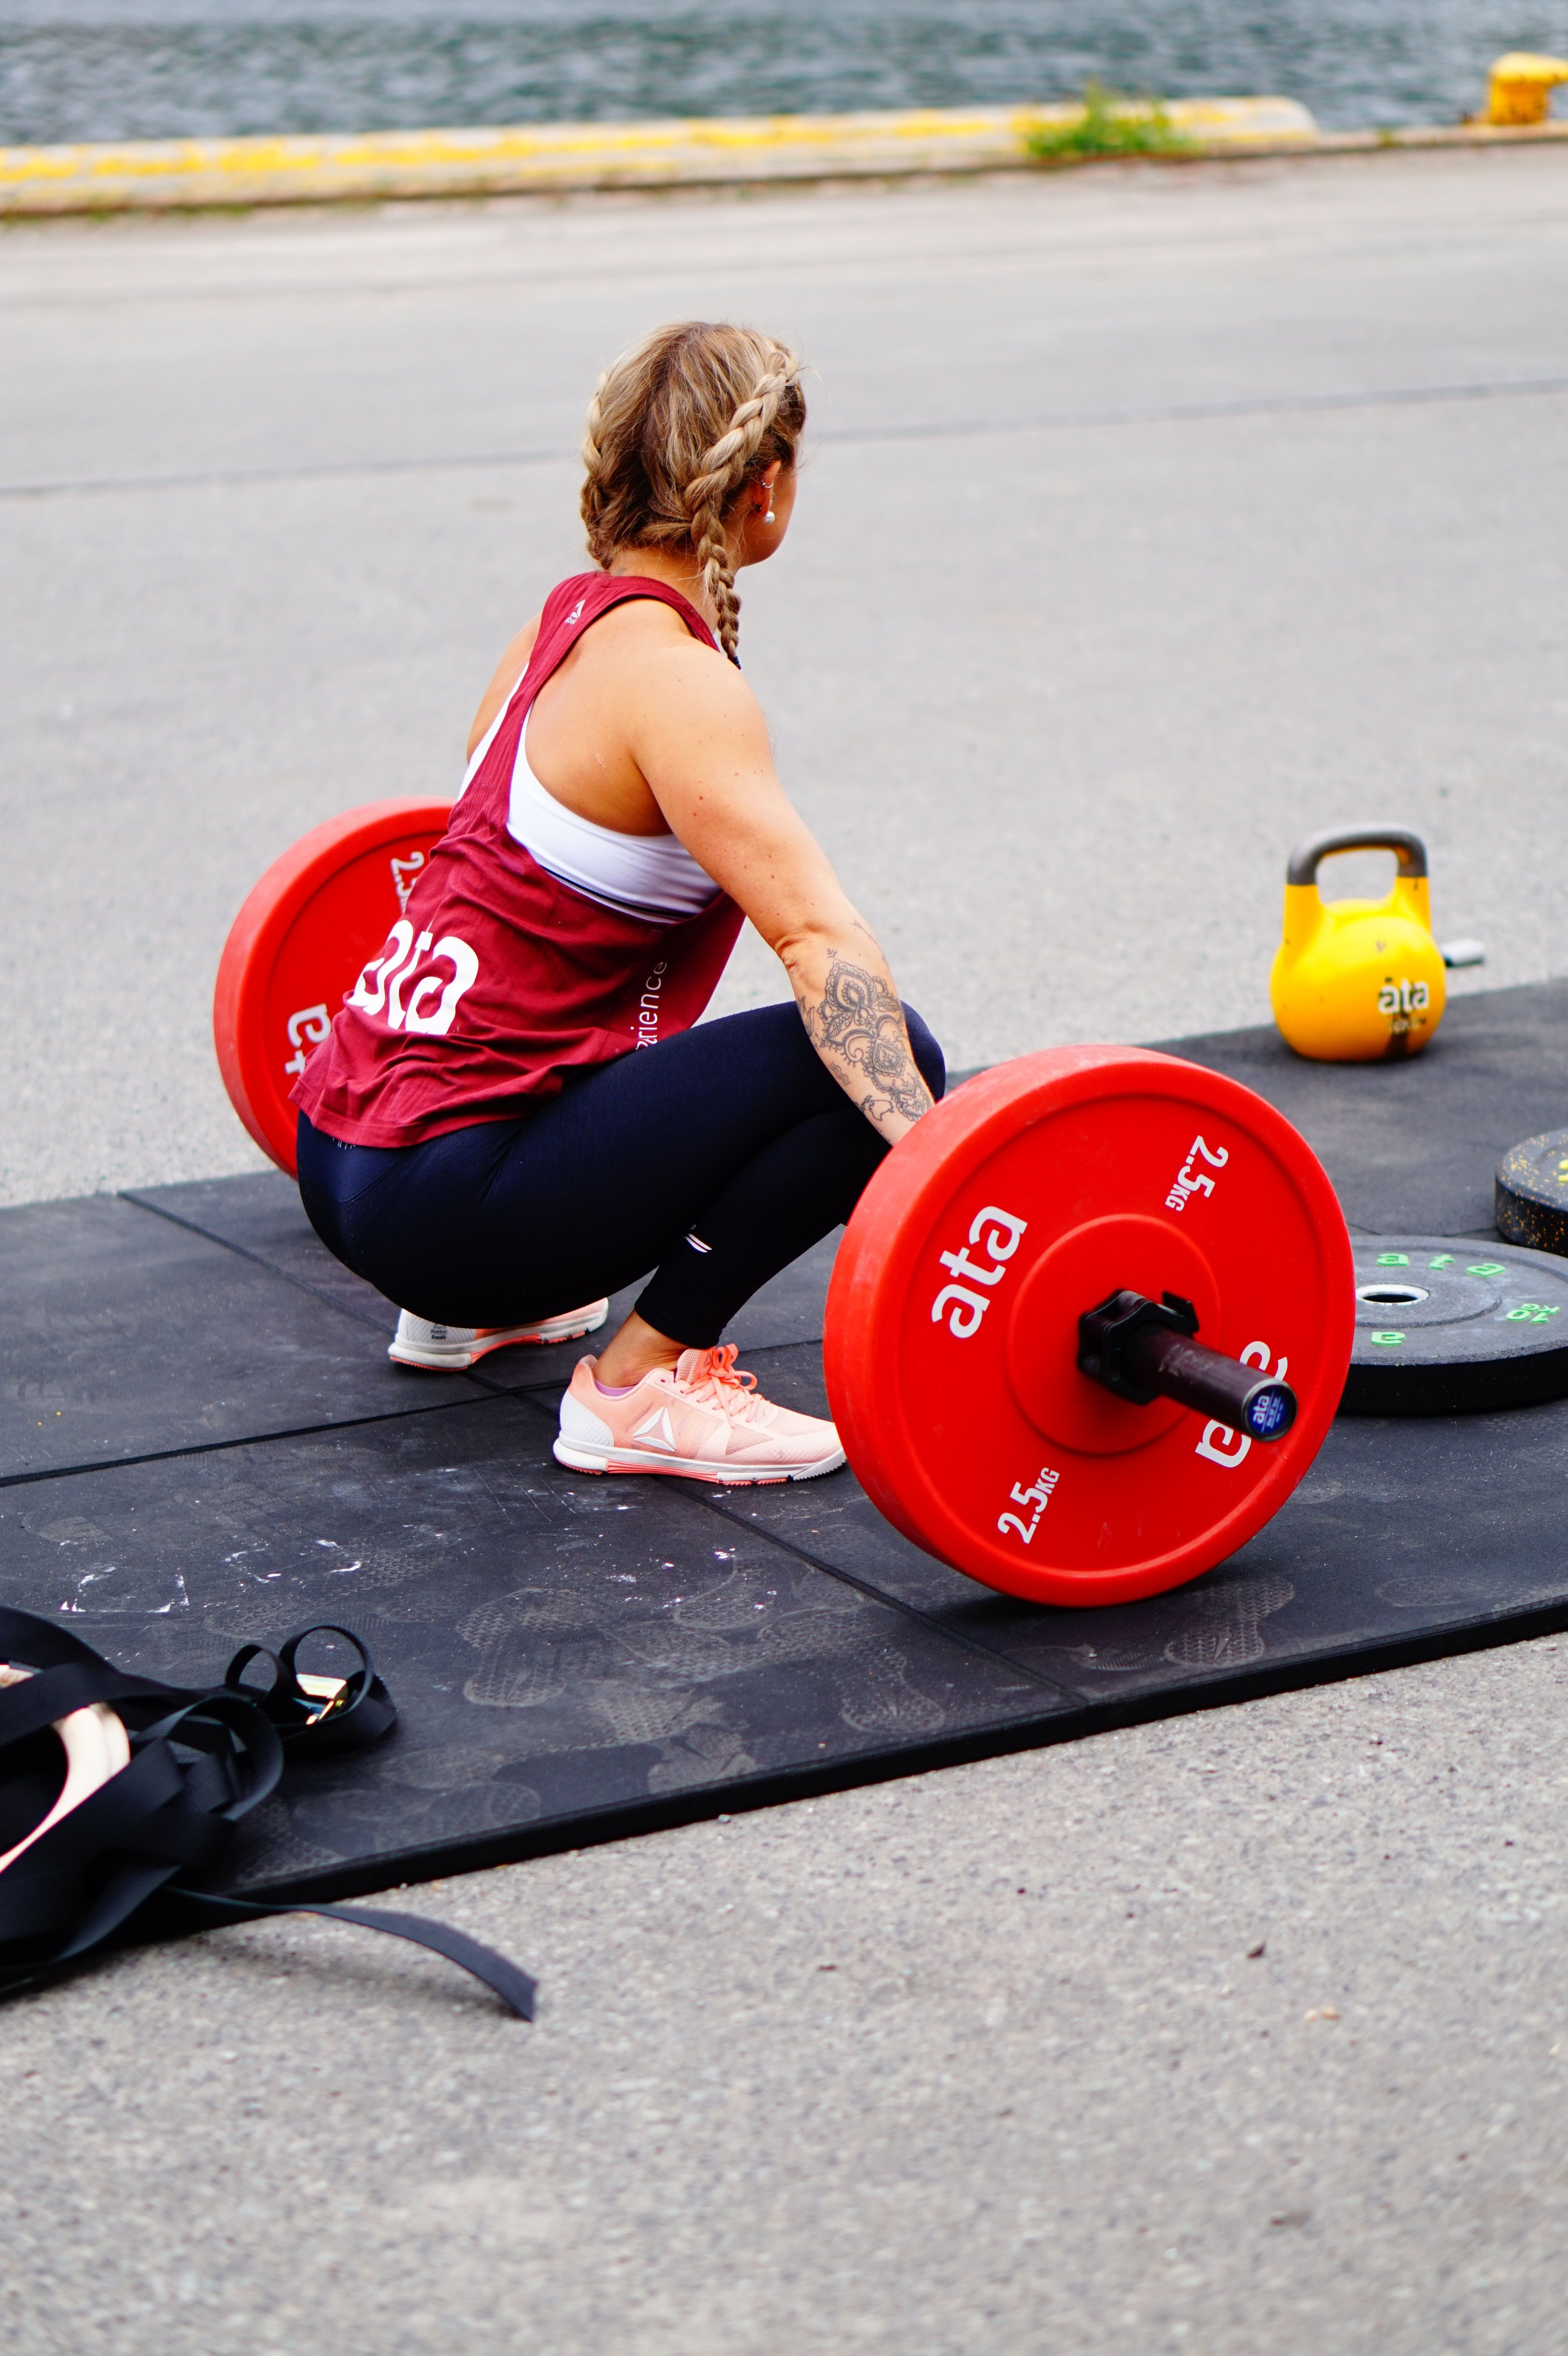 What Is the Best Strength Training Equipment? Kettlebell? Barbell?